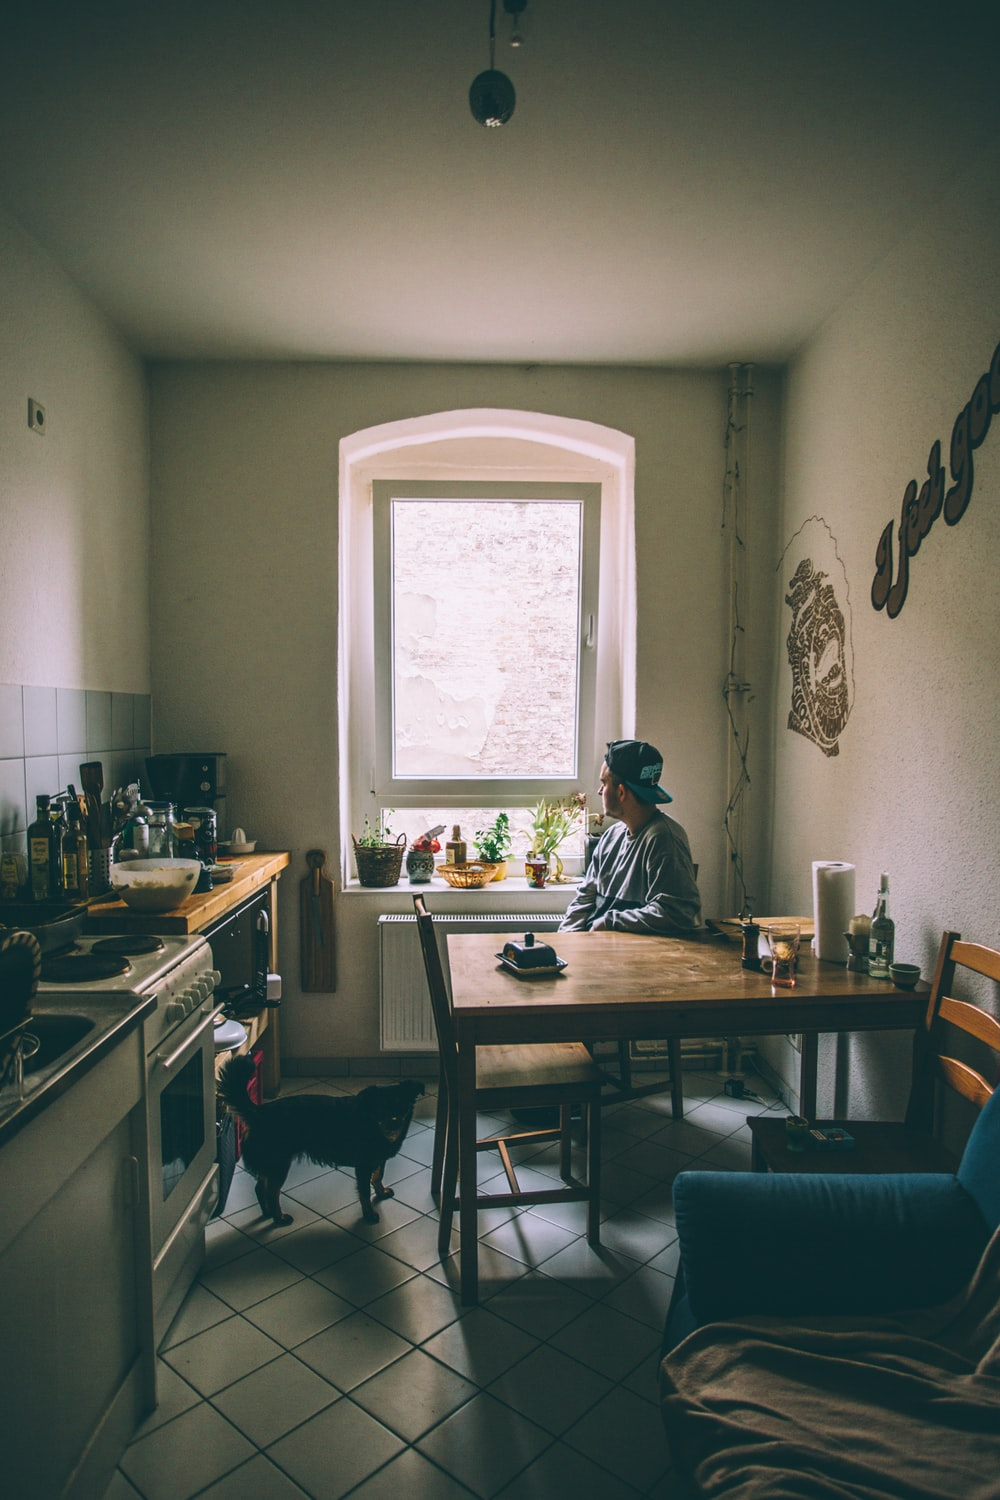 Man sitting a table with dog in a kitchen.